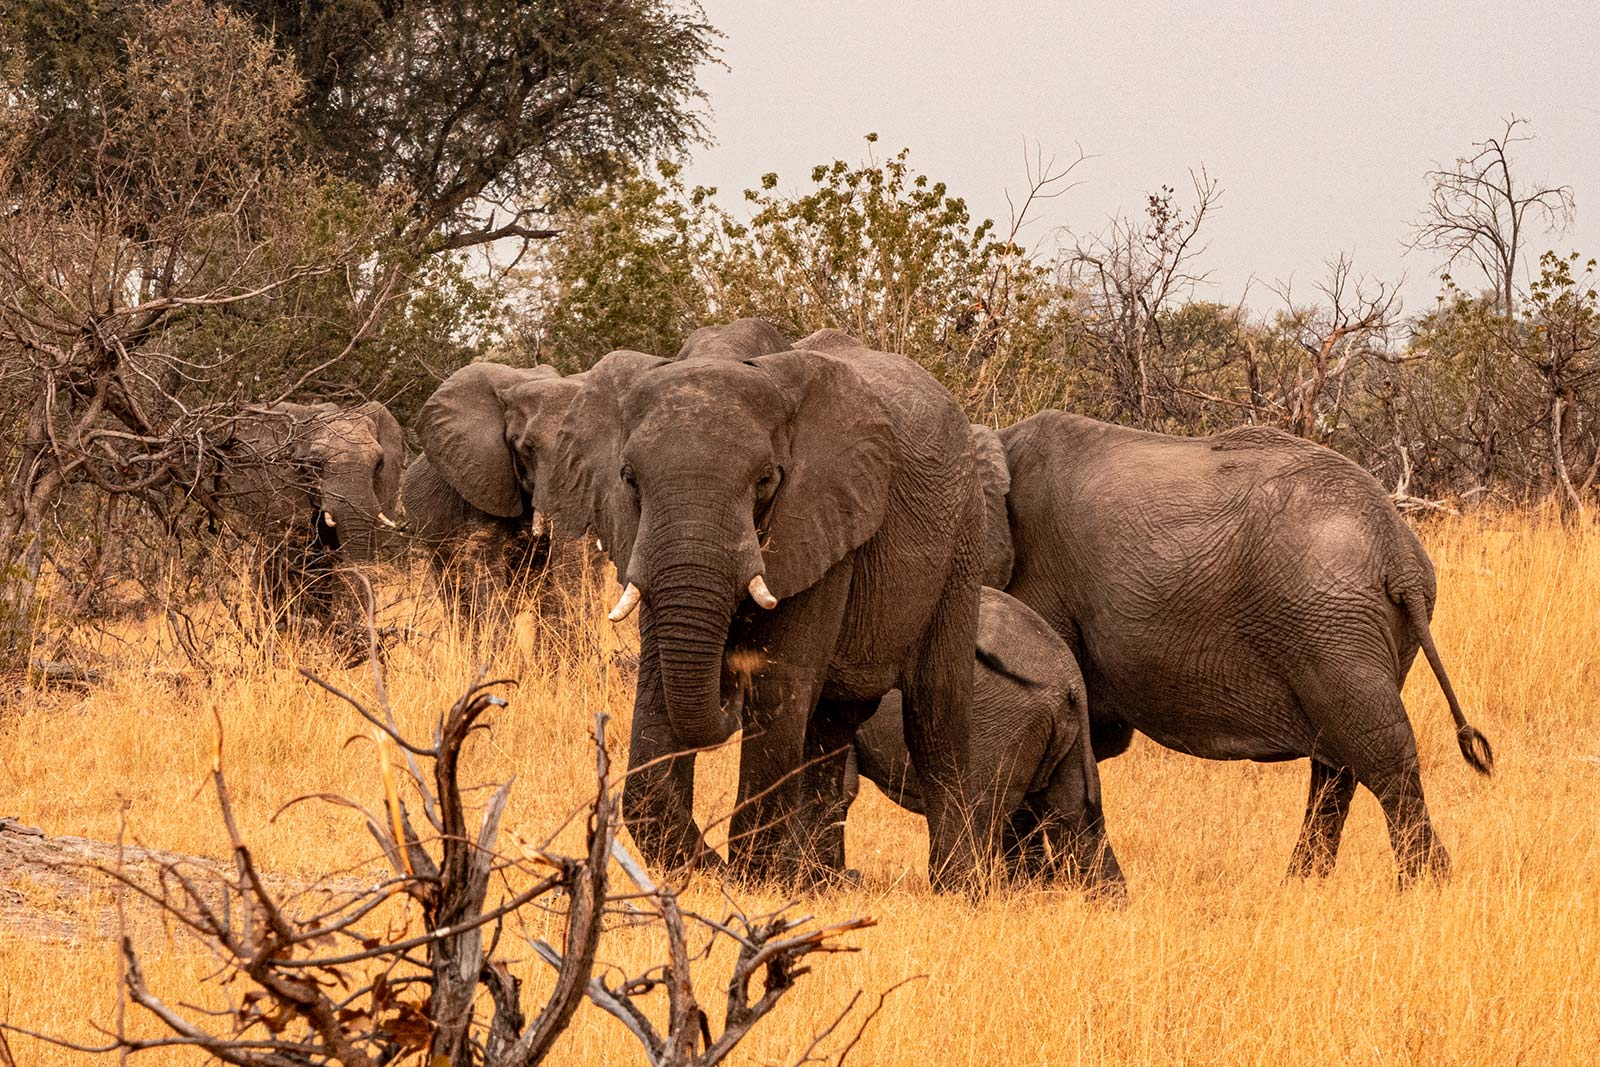 Elephants in Botswana, Africa. Getting chased by a herd of elephants